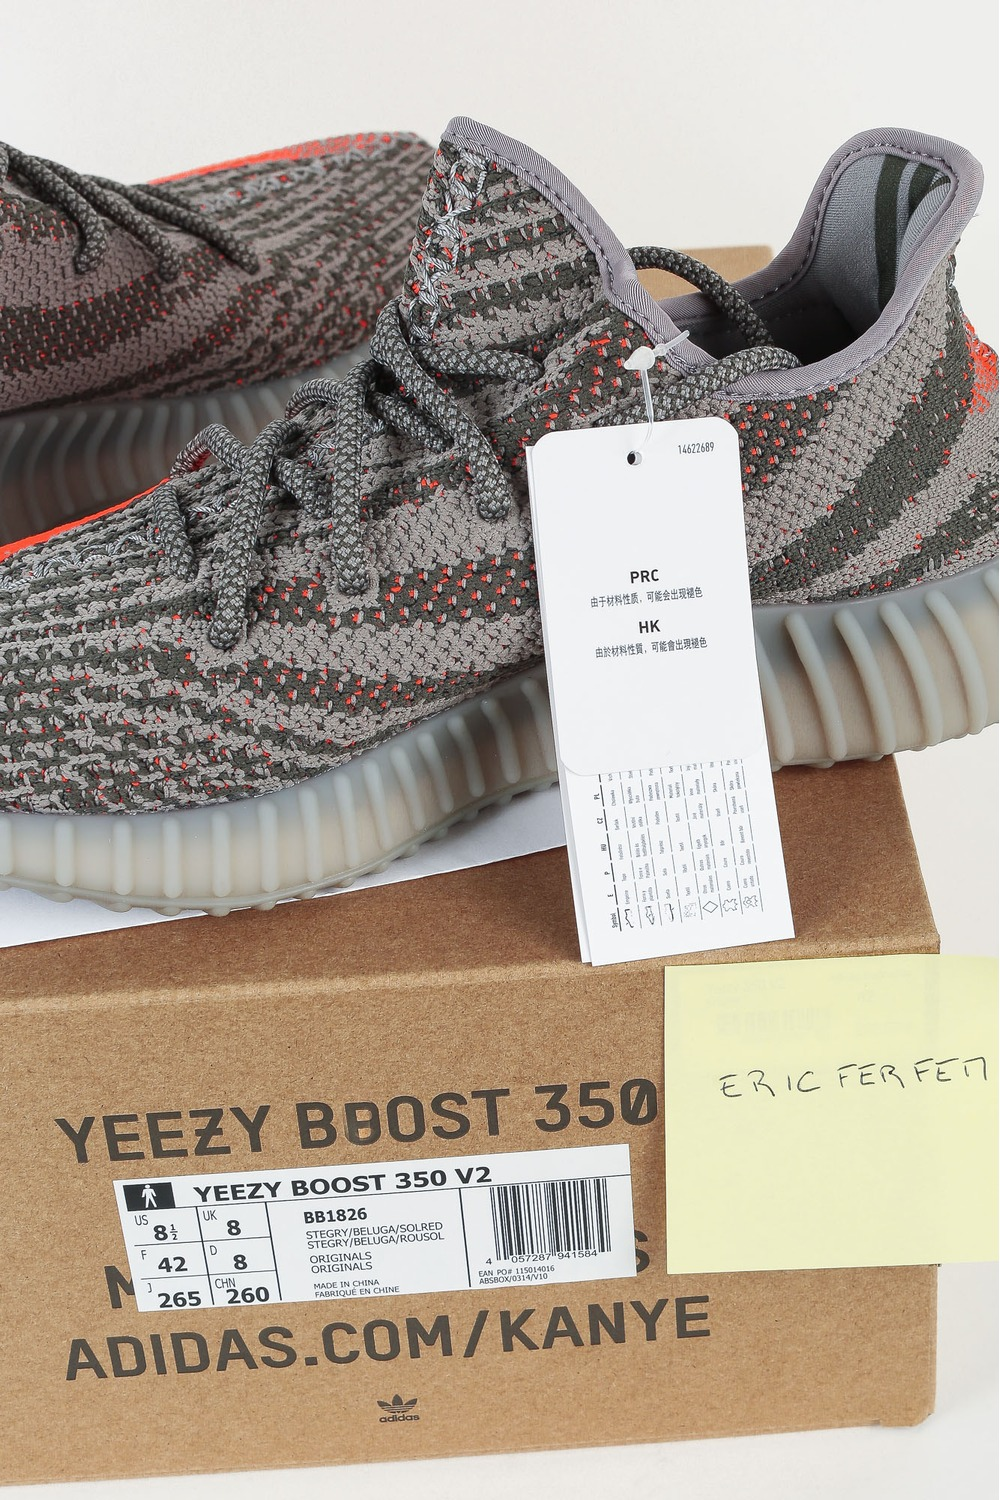 Want Discount Wonderful UA Yeezy 350 Boost V2 RED SPLY 350